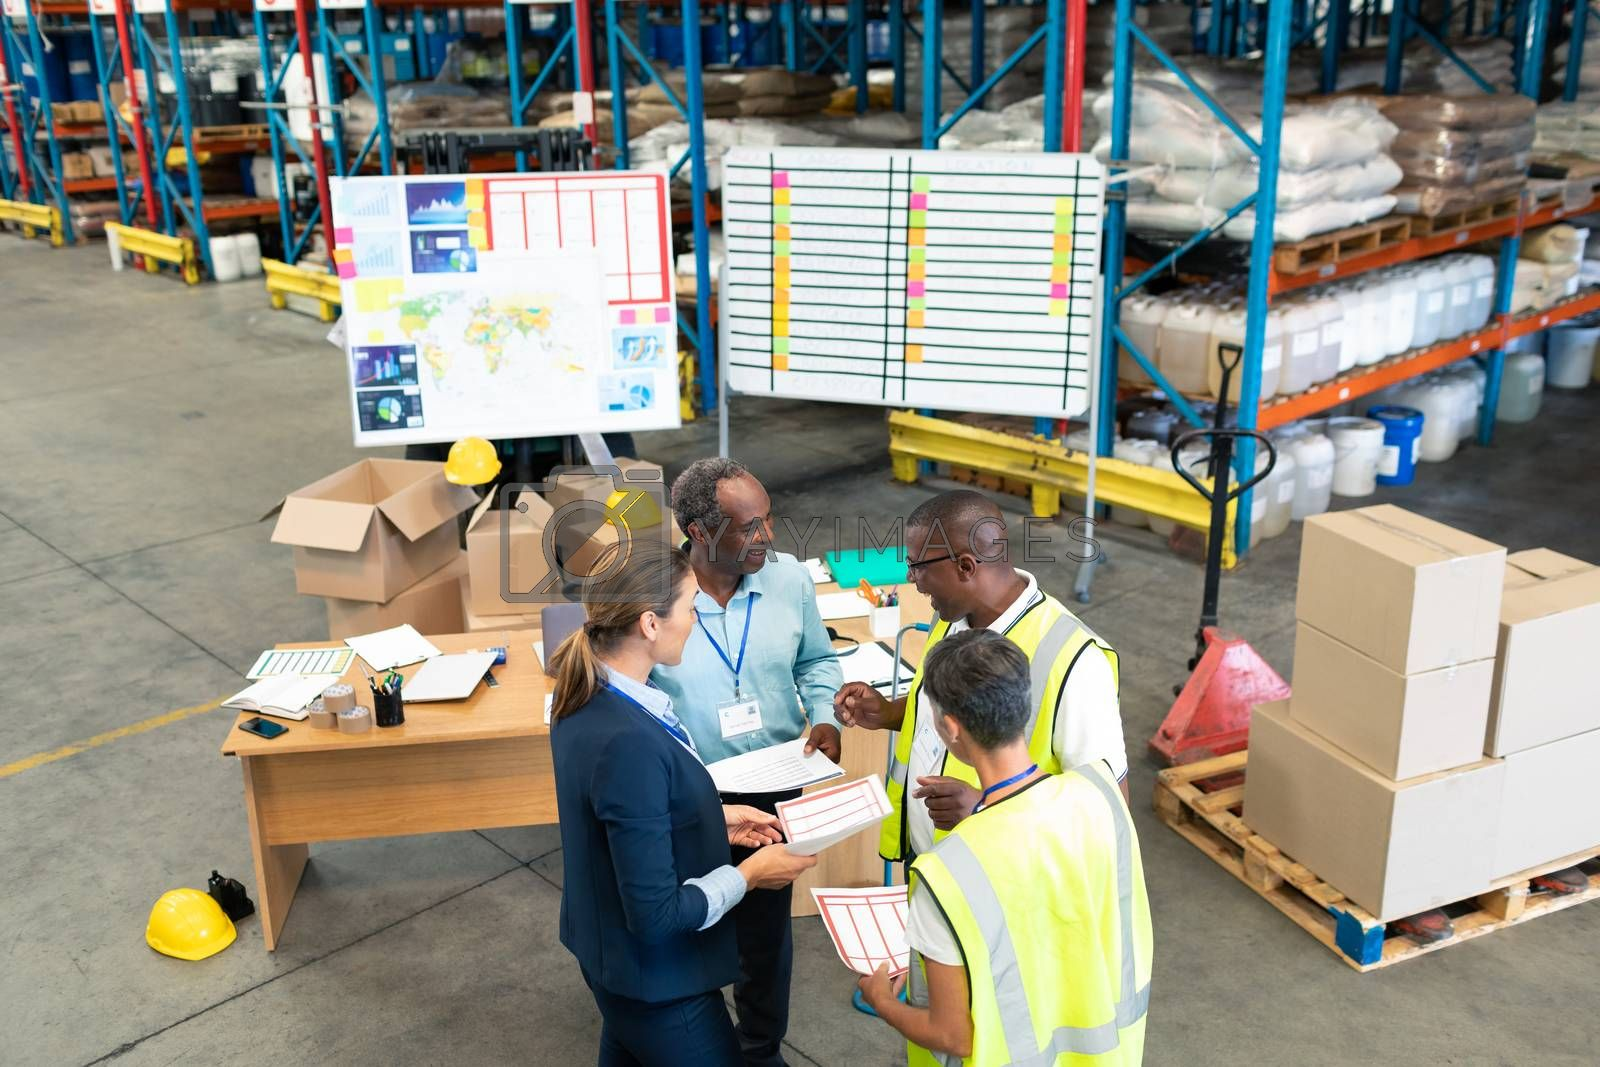 High angle view of mature diverse staffs discussing over document in warehouse. This is a freight transportation and distribution warehouse. Industrial and industrial workers concept